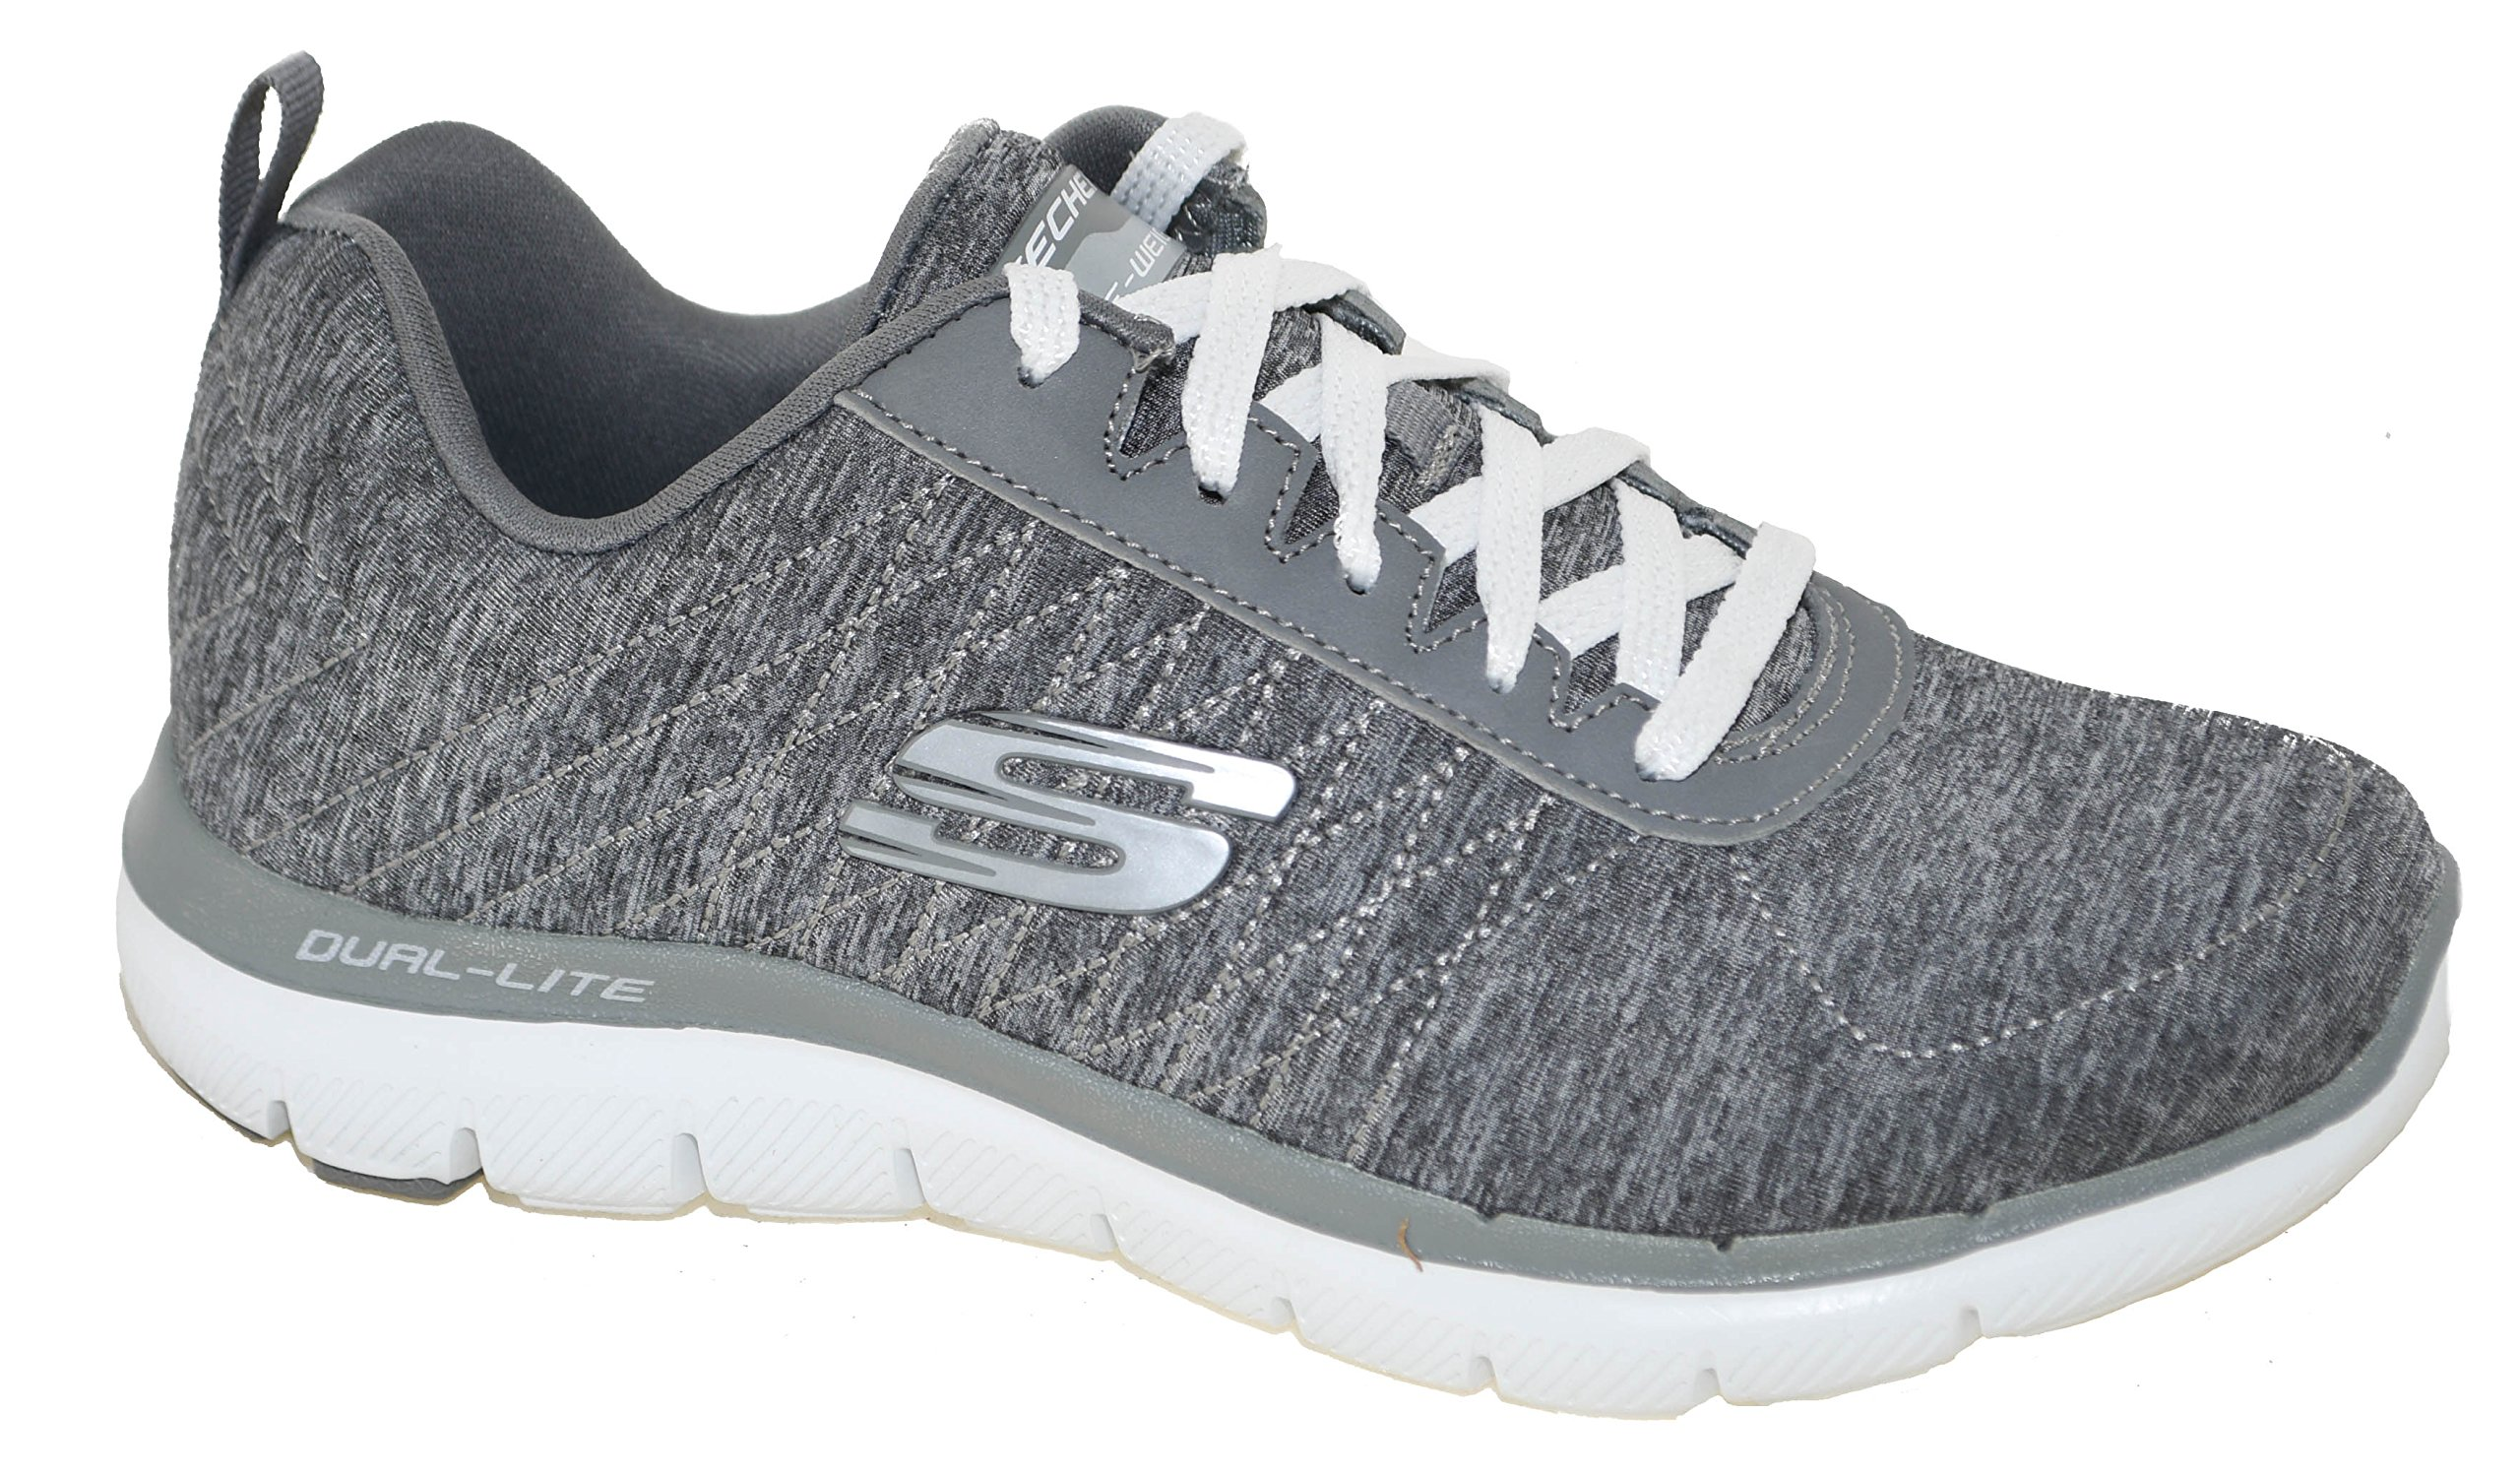 Skechers Women's Flex Appeal 2.0 Training Sneaker Style 12753 Gry, 8.5W